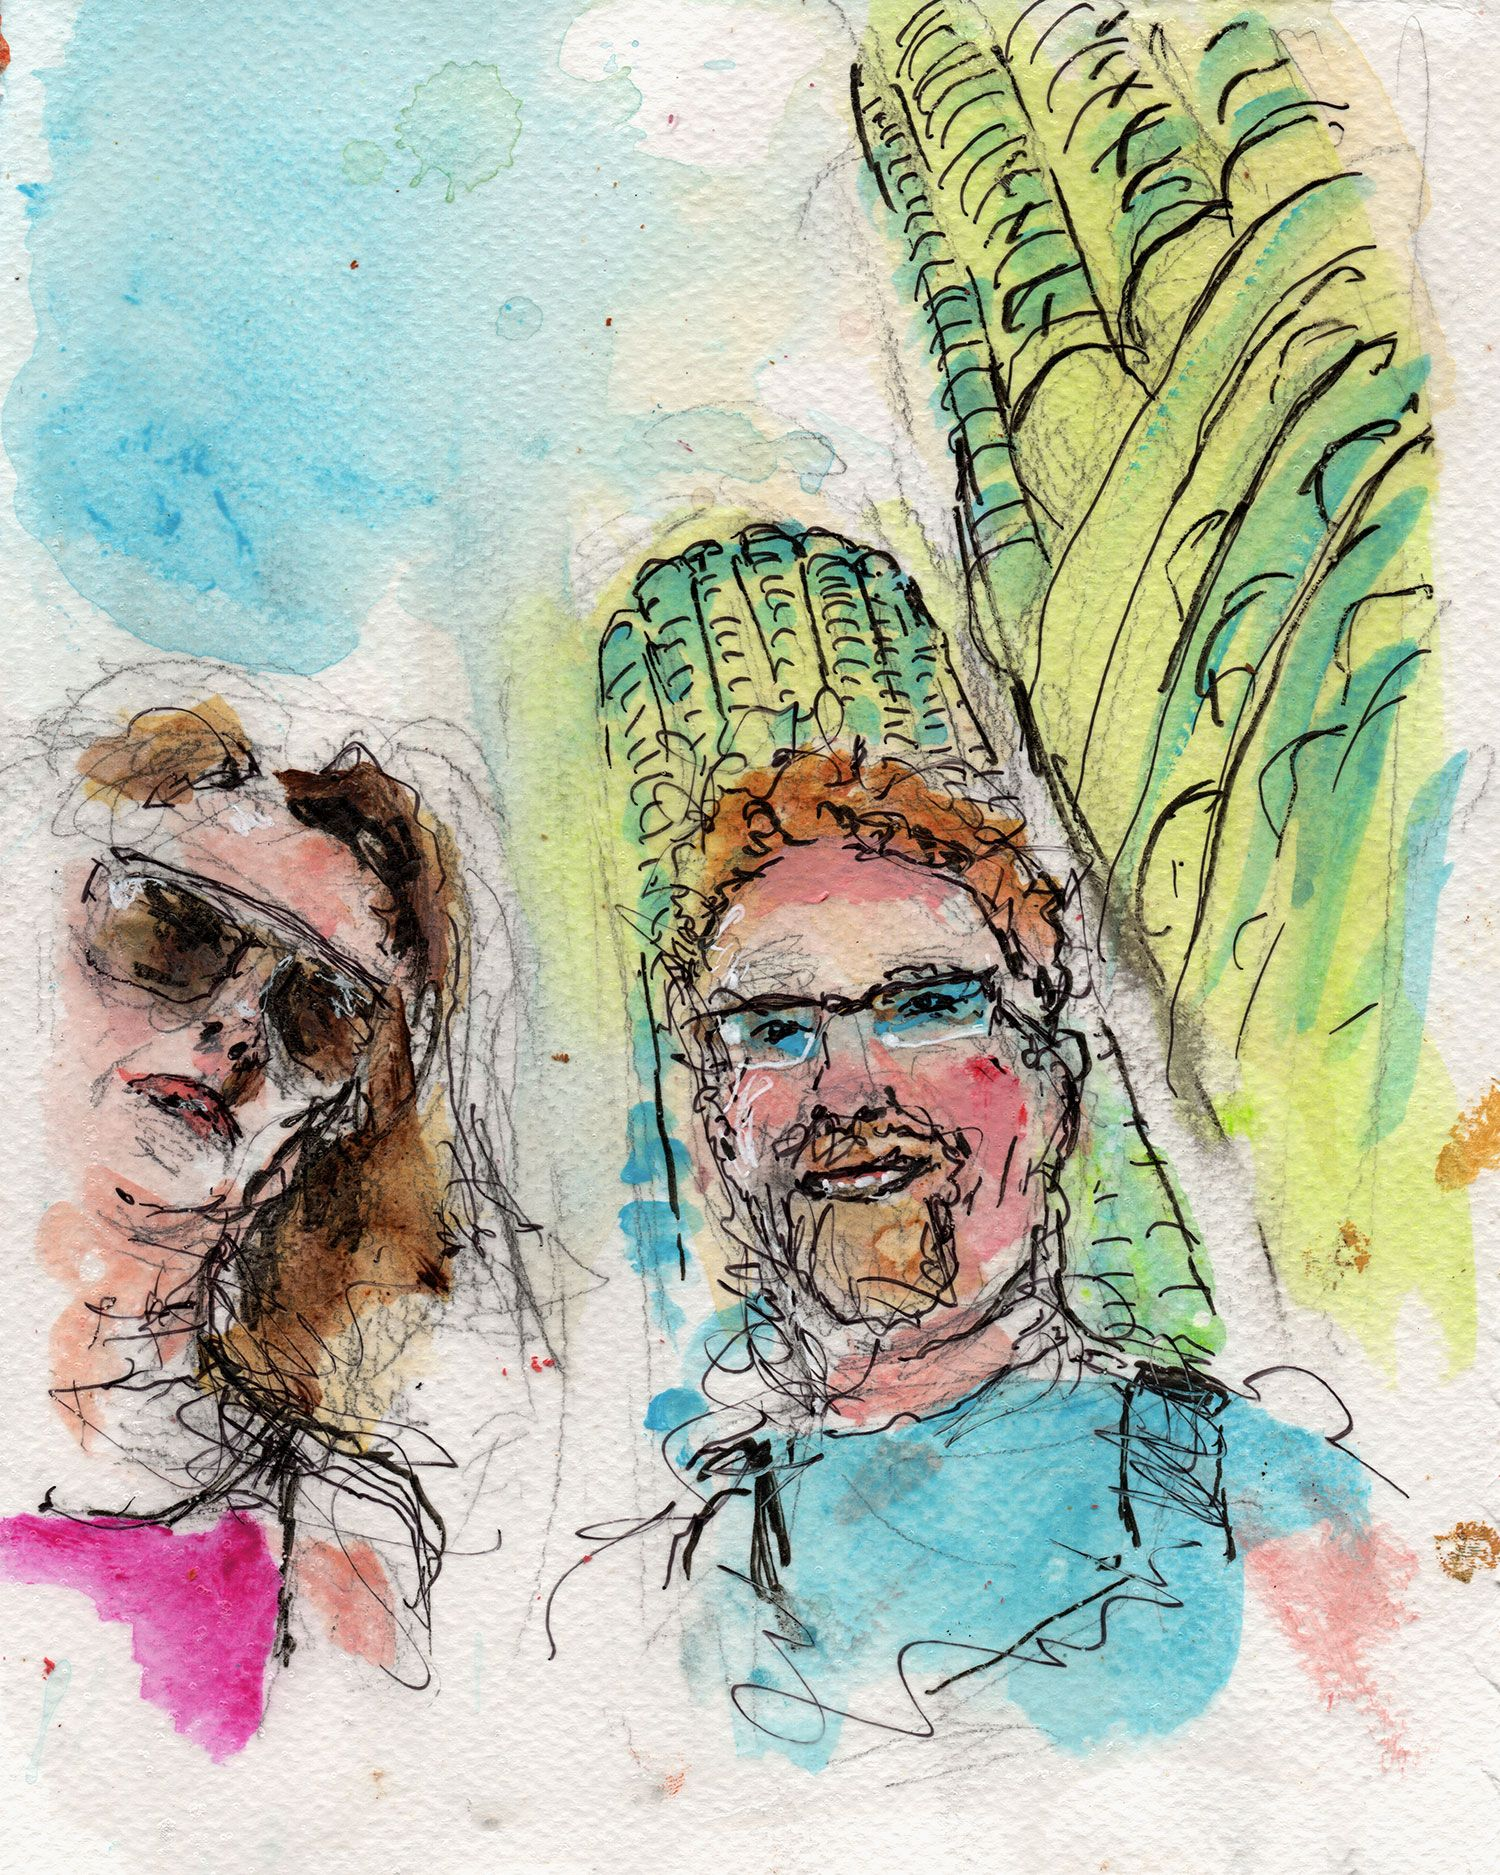 """9/27/15 - Amy and Johnny . Mixed media on watercolor paper. 8"""" x 10"""". $50."""